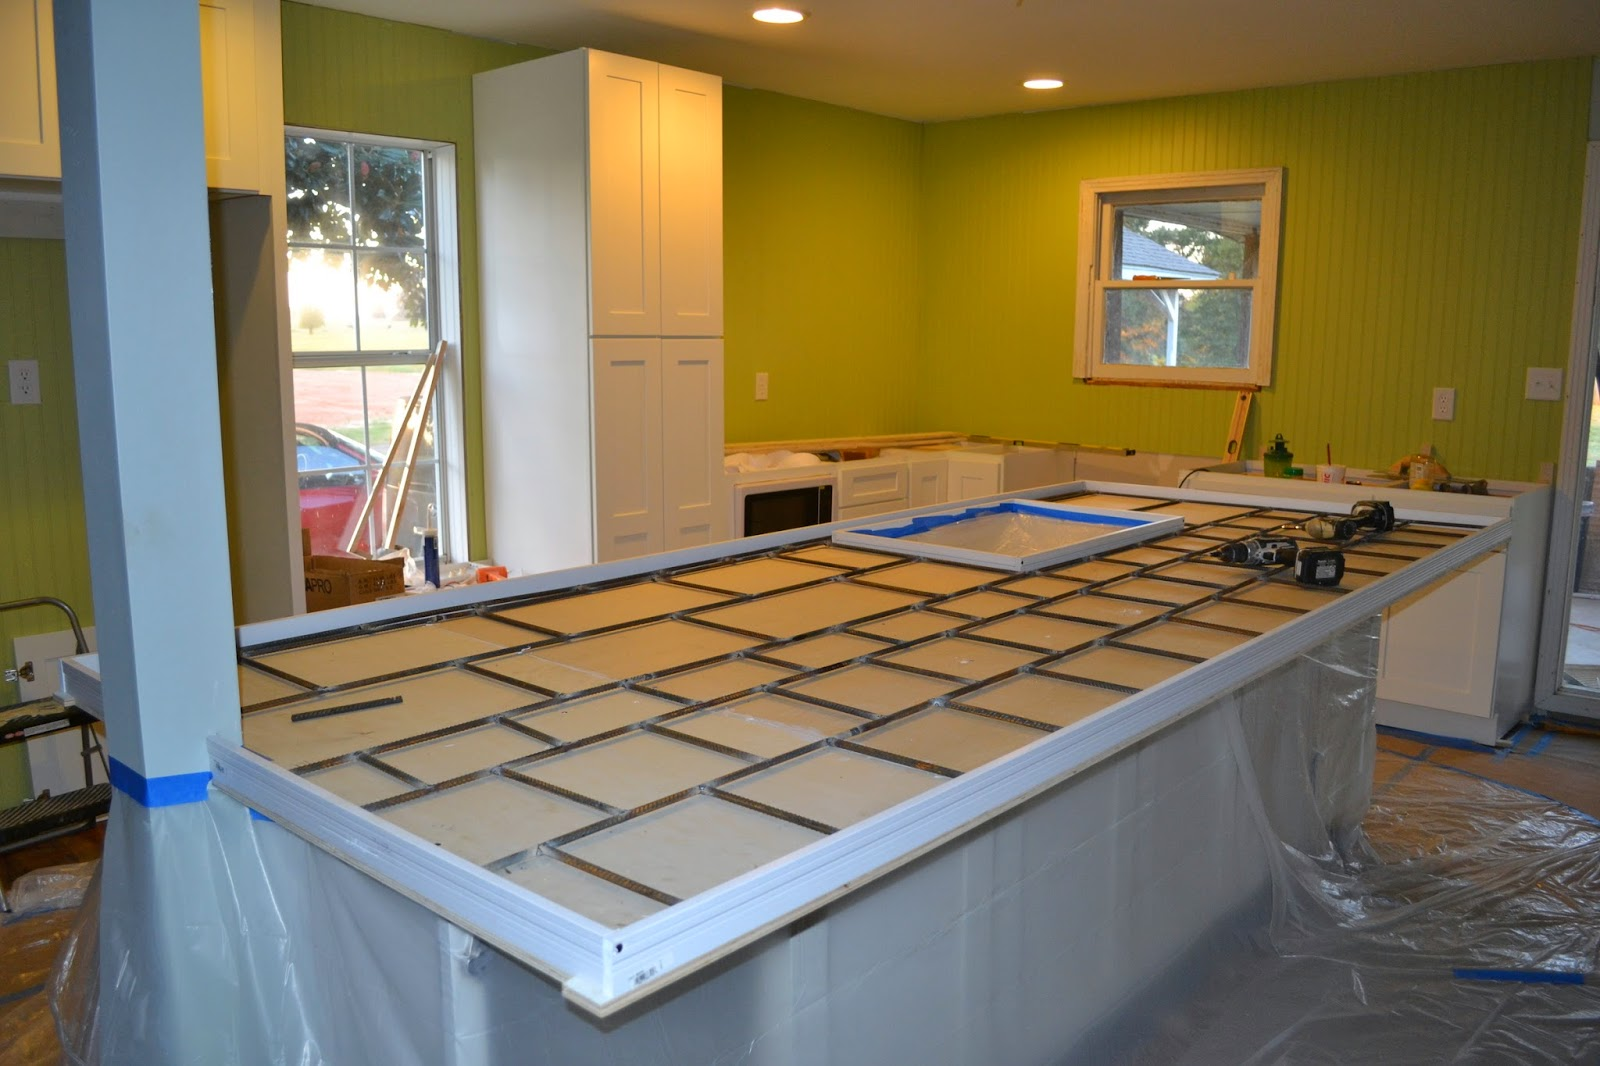 Concrete Countertop Reinforcement My Stuff November 2014